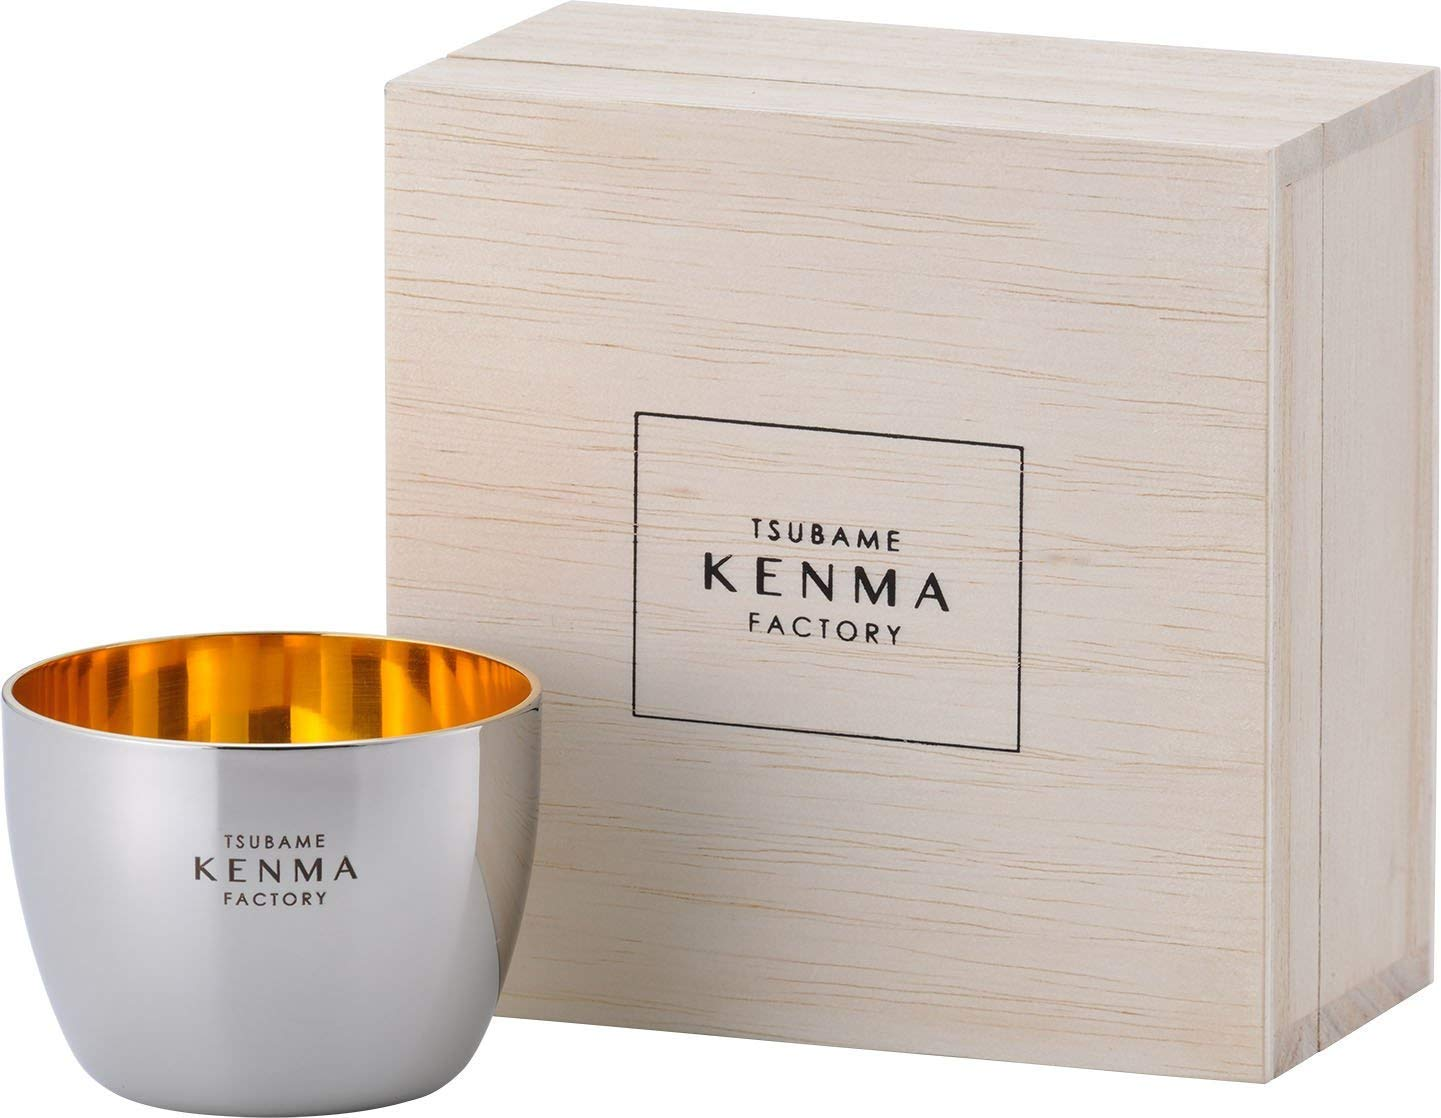 TSUBAME KENMA Stainless Gold-Plated Japanese Sake Cup Round Guinomi 1033745 from Japan by BELNES